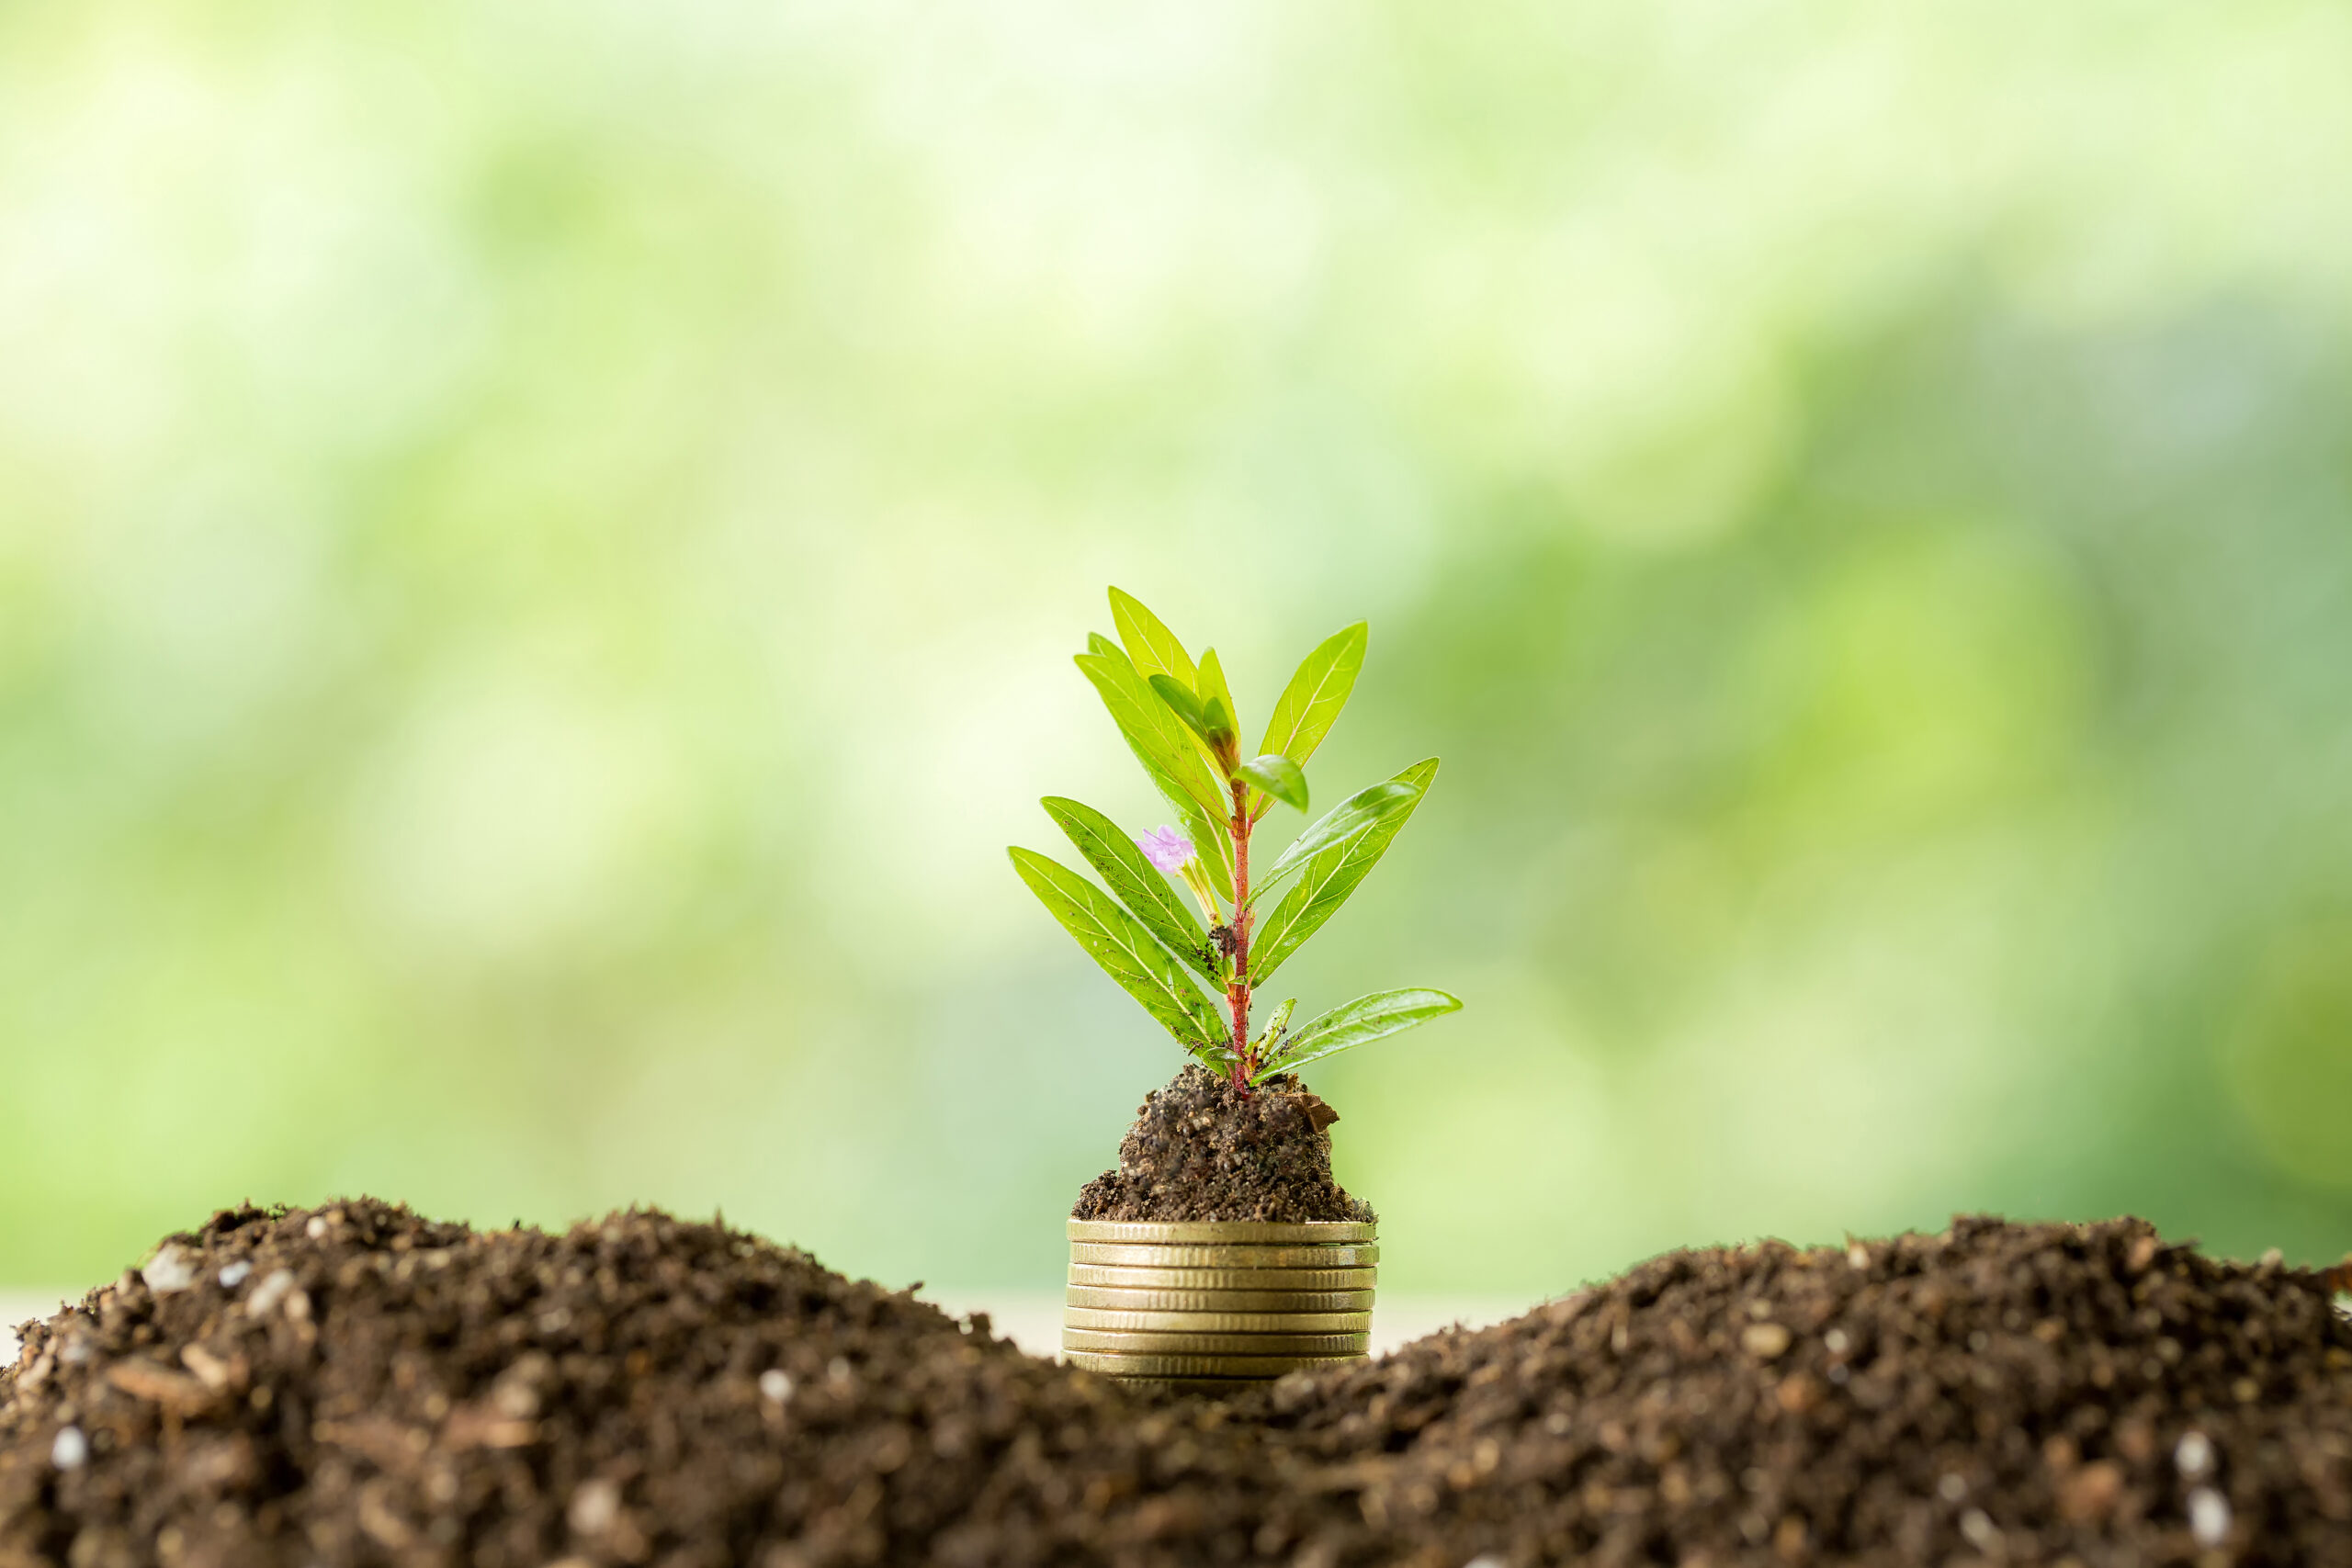 Additional green funding has been announced